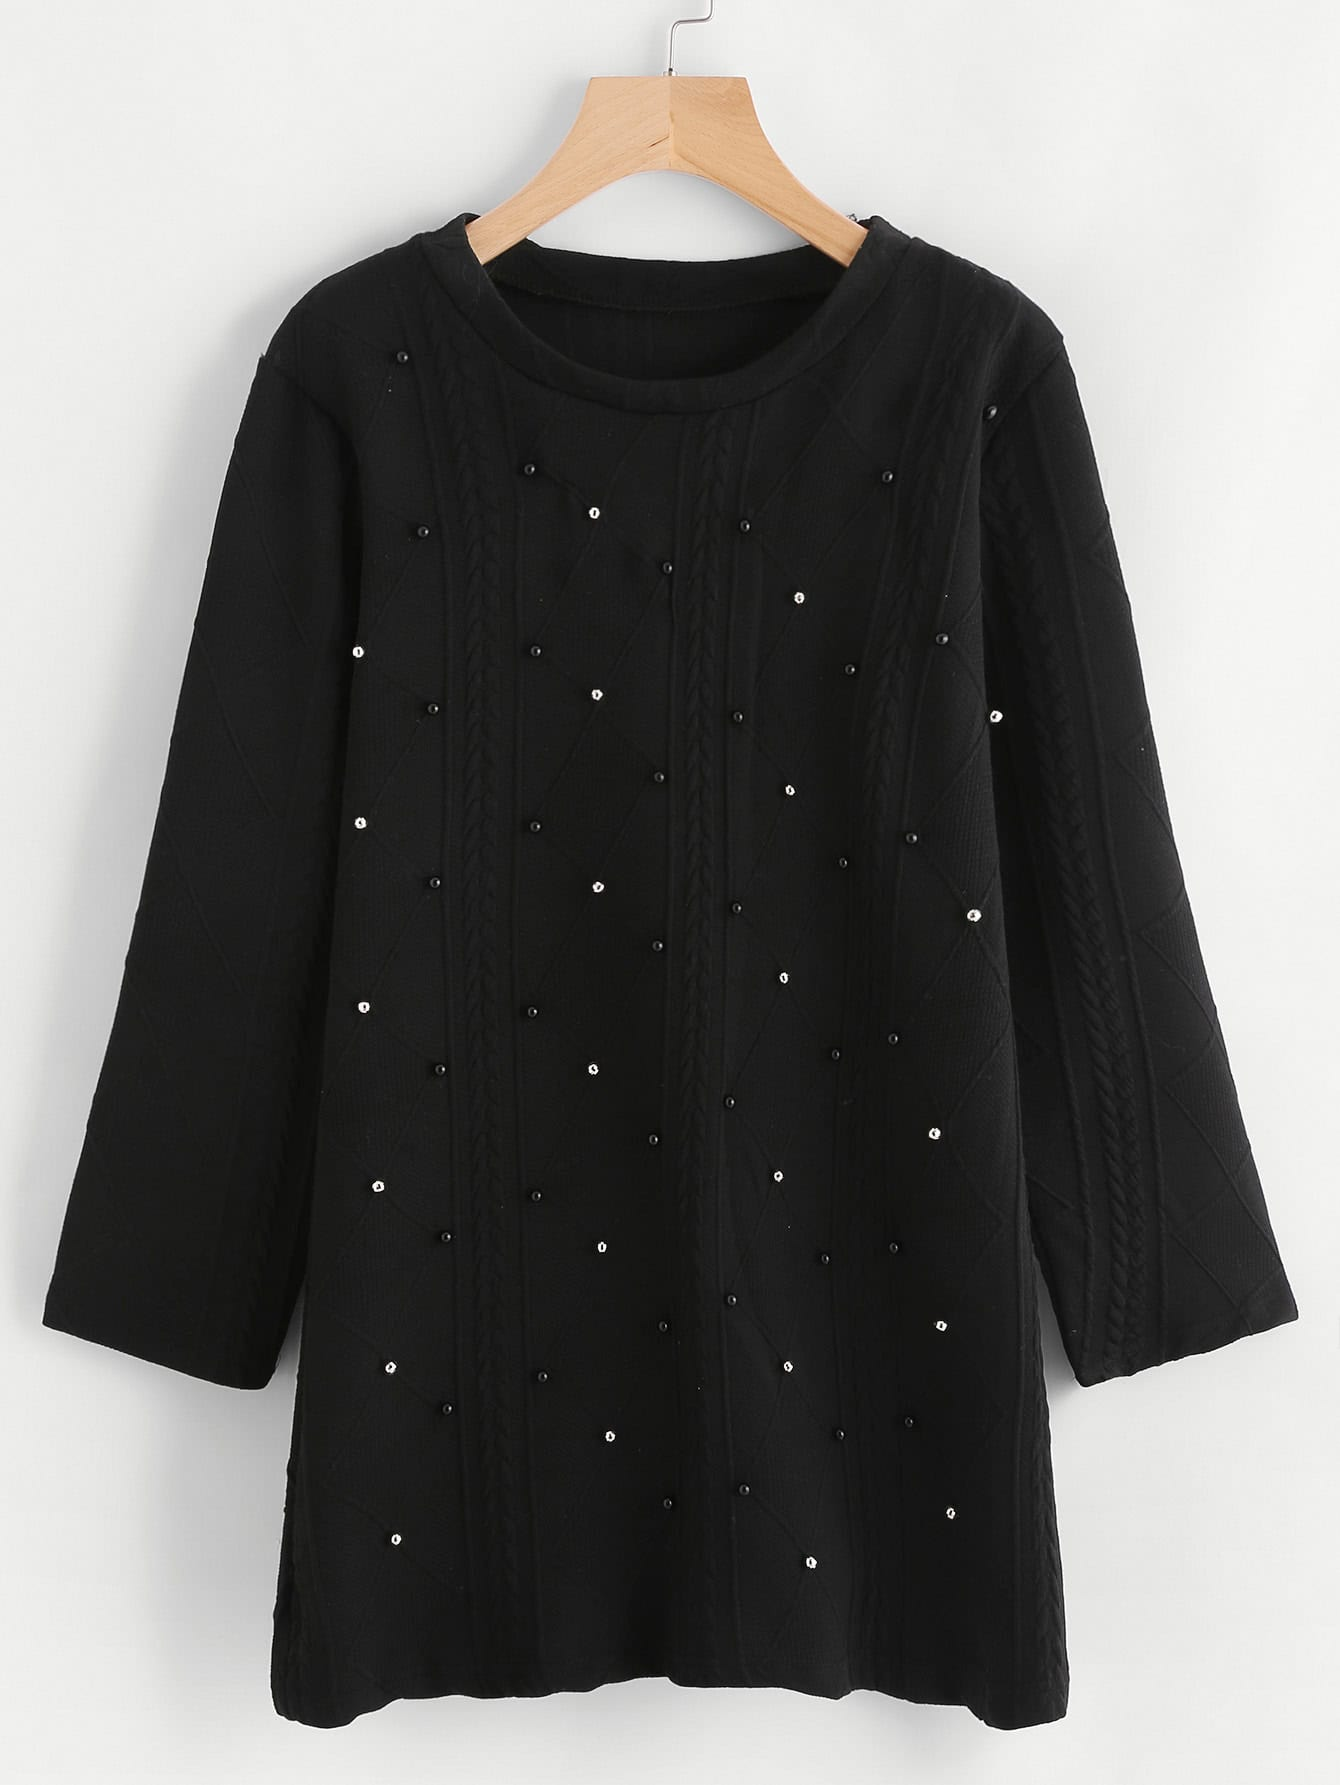 Studded Detail Sweater admin manage